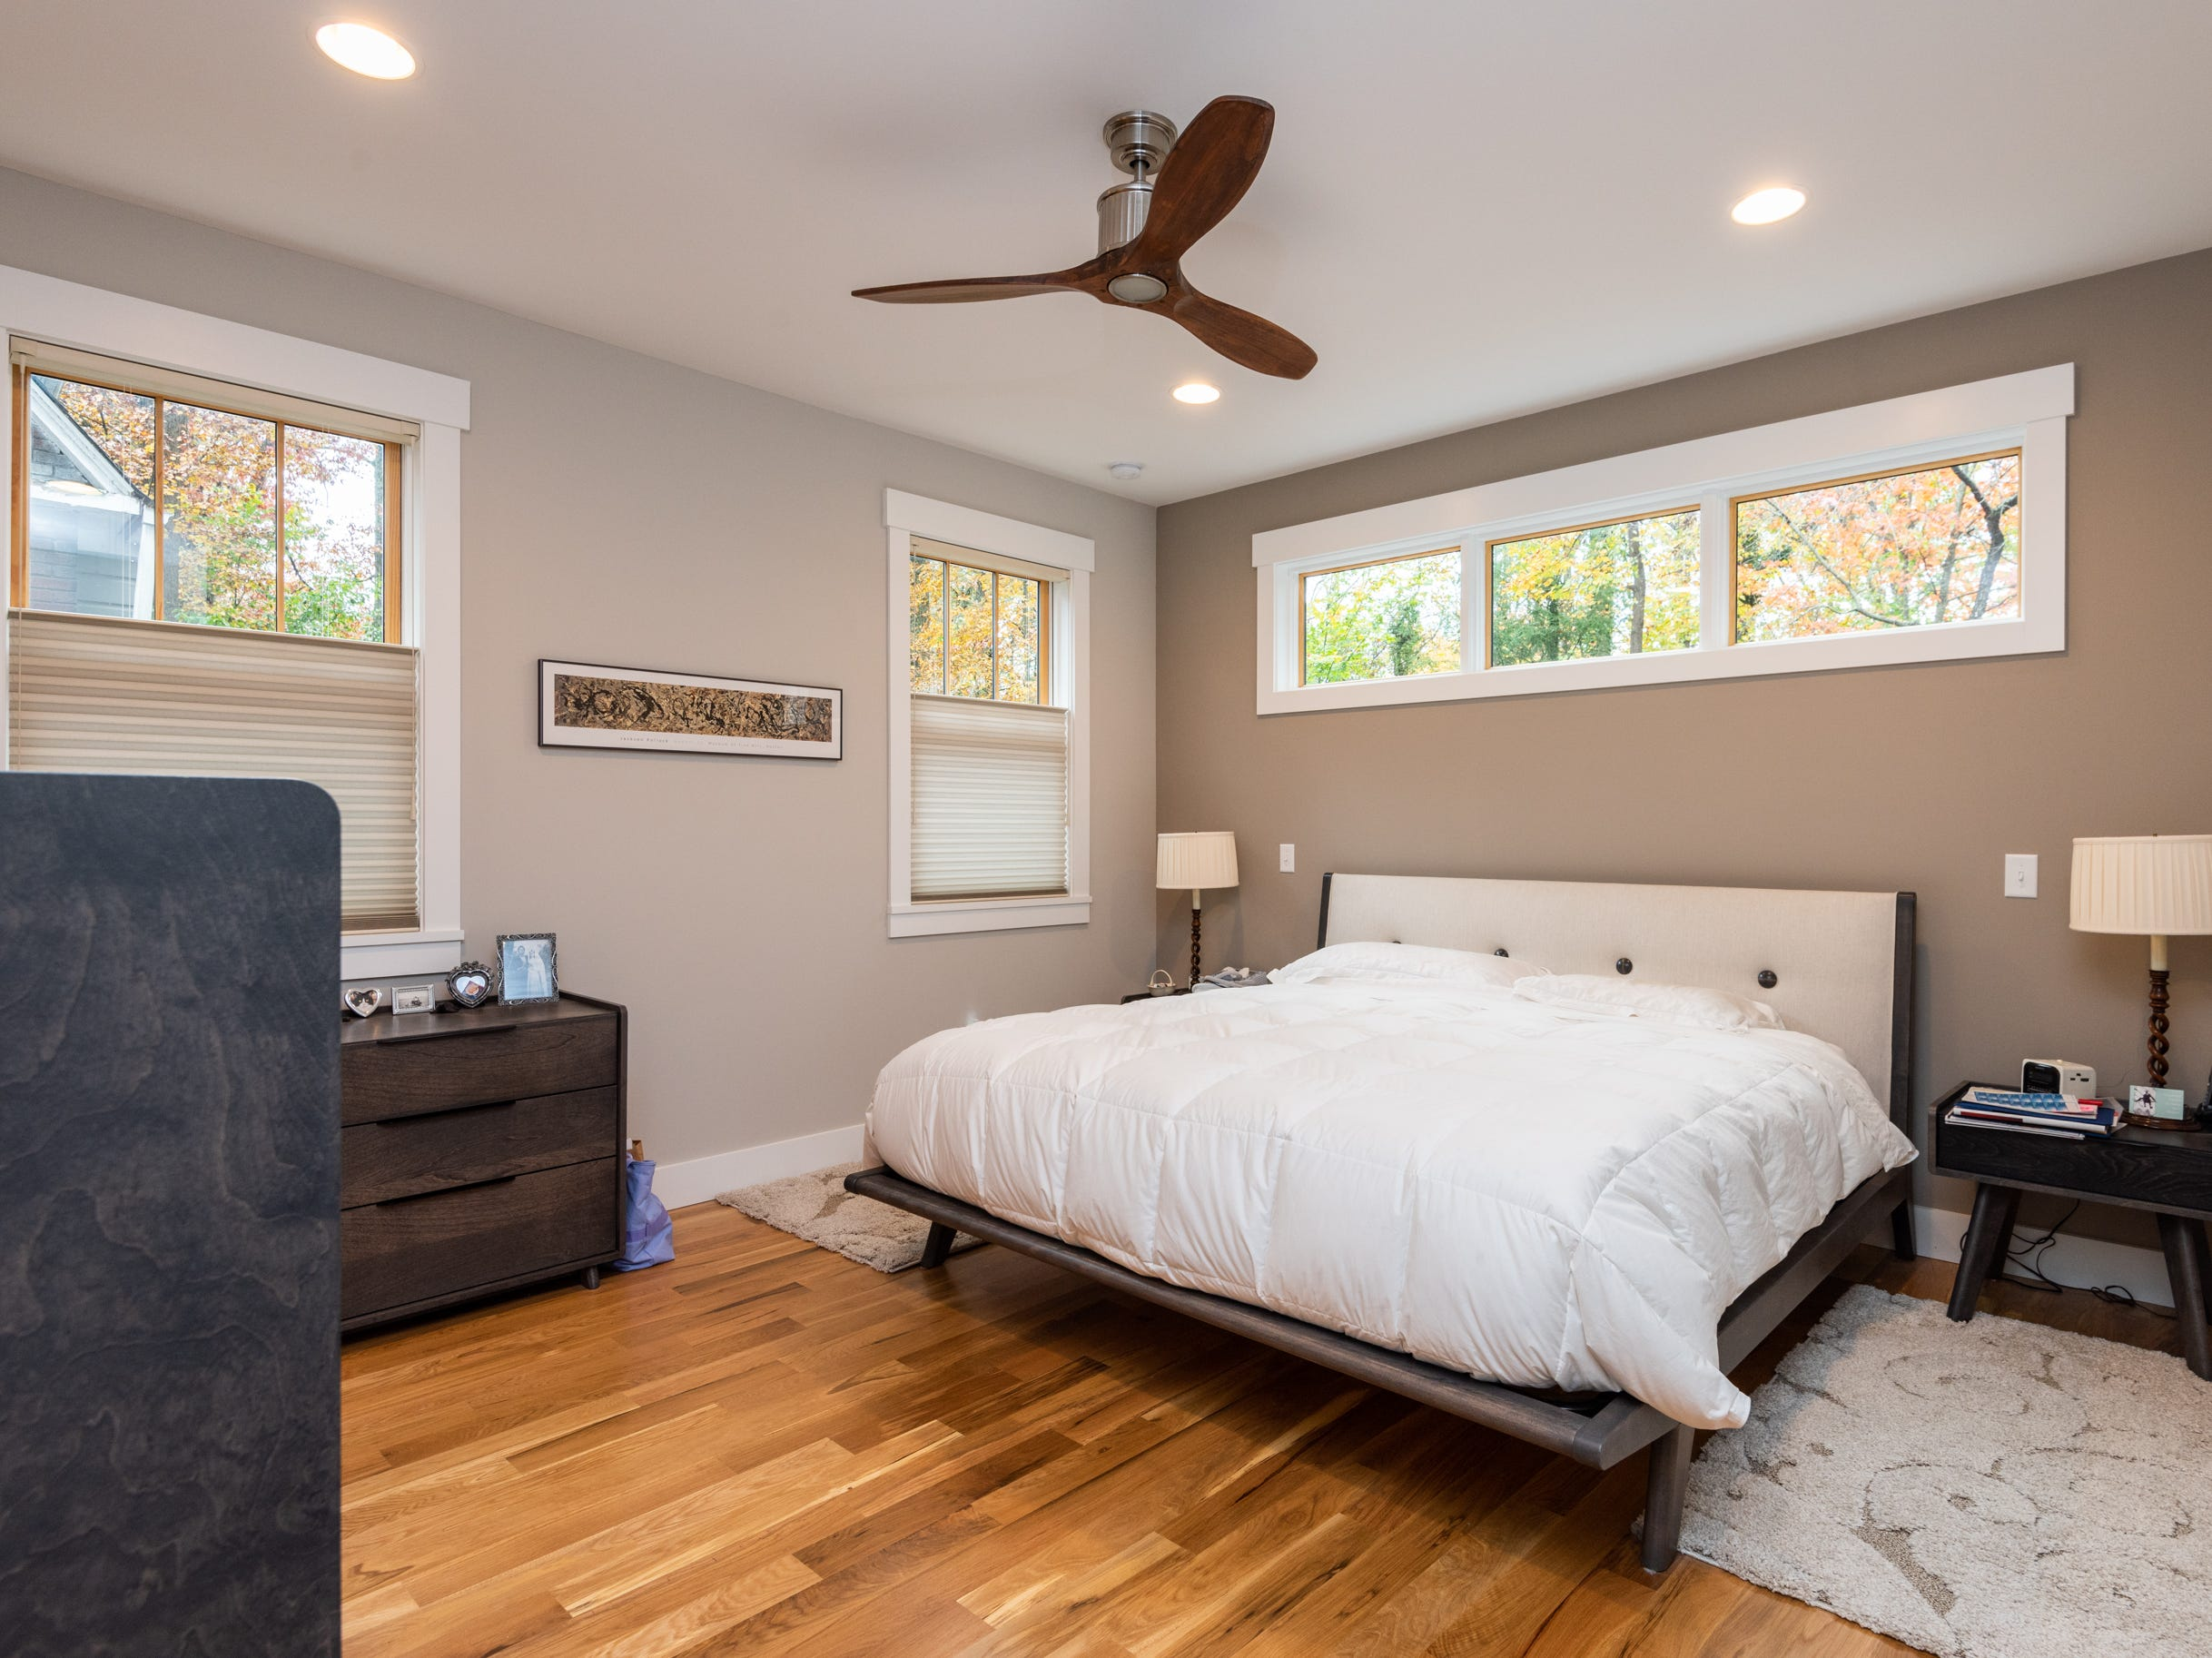 The master bedroom is well lit by windows that also provide privacy.